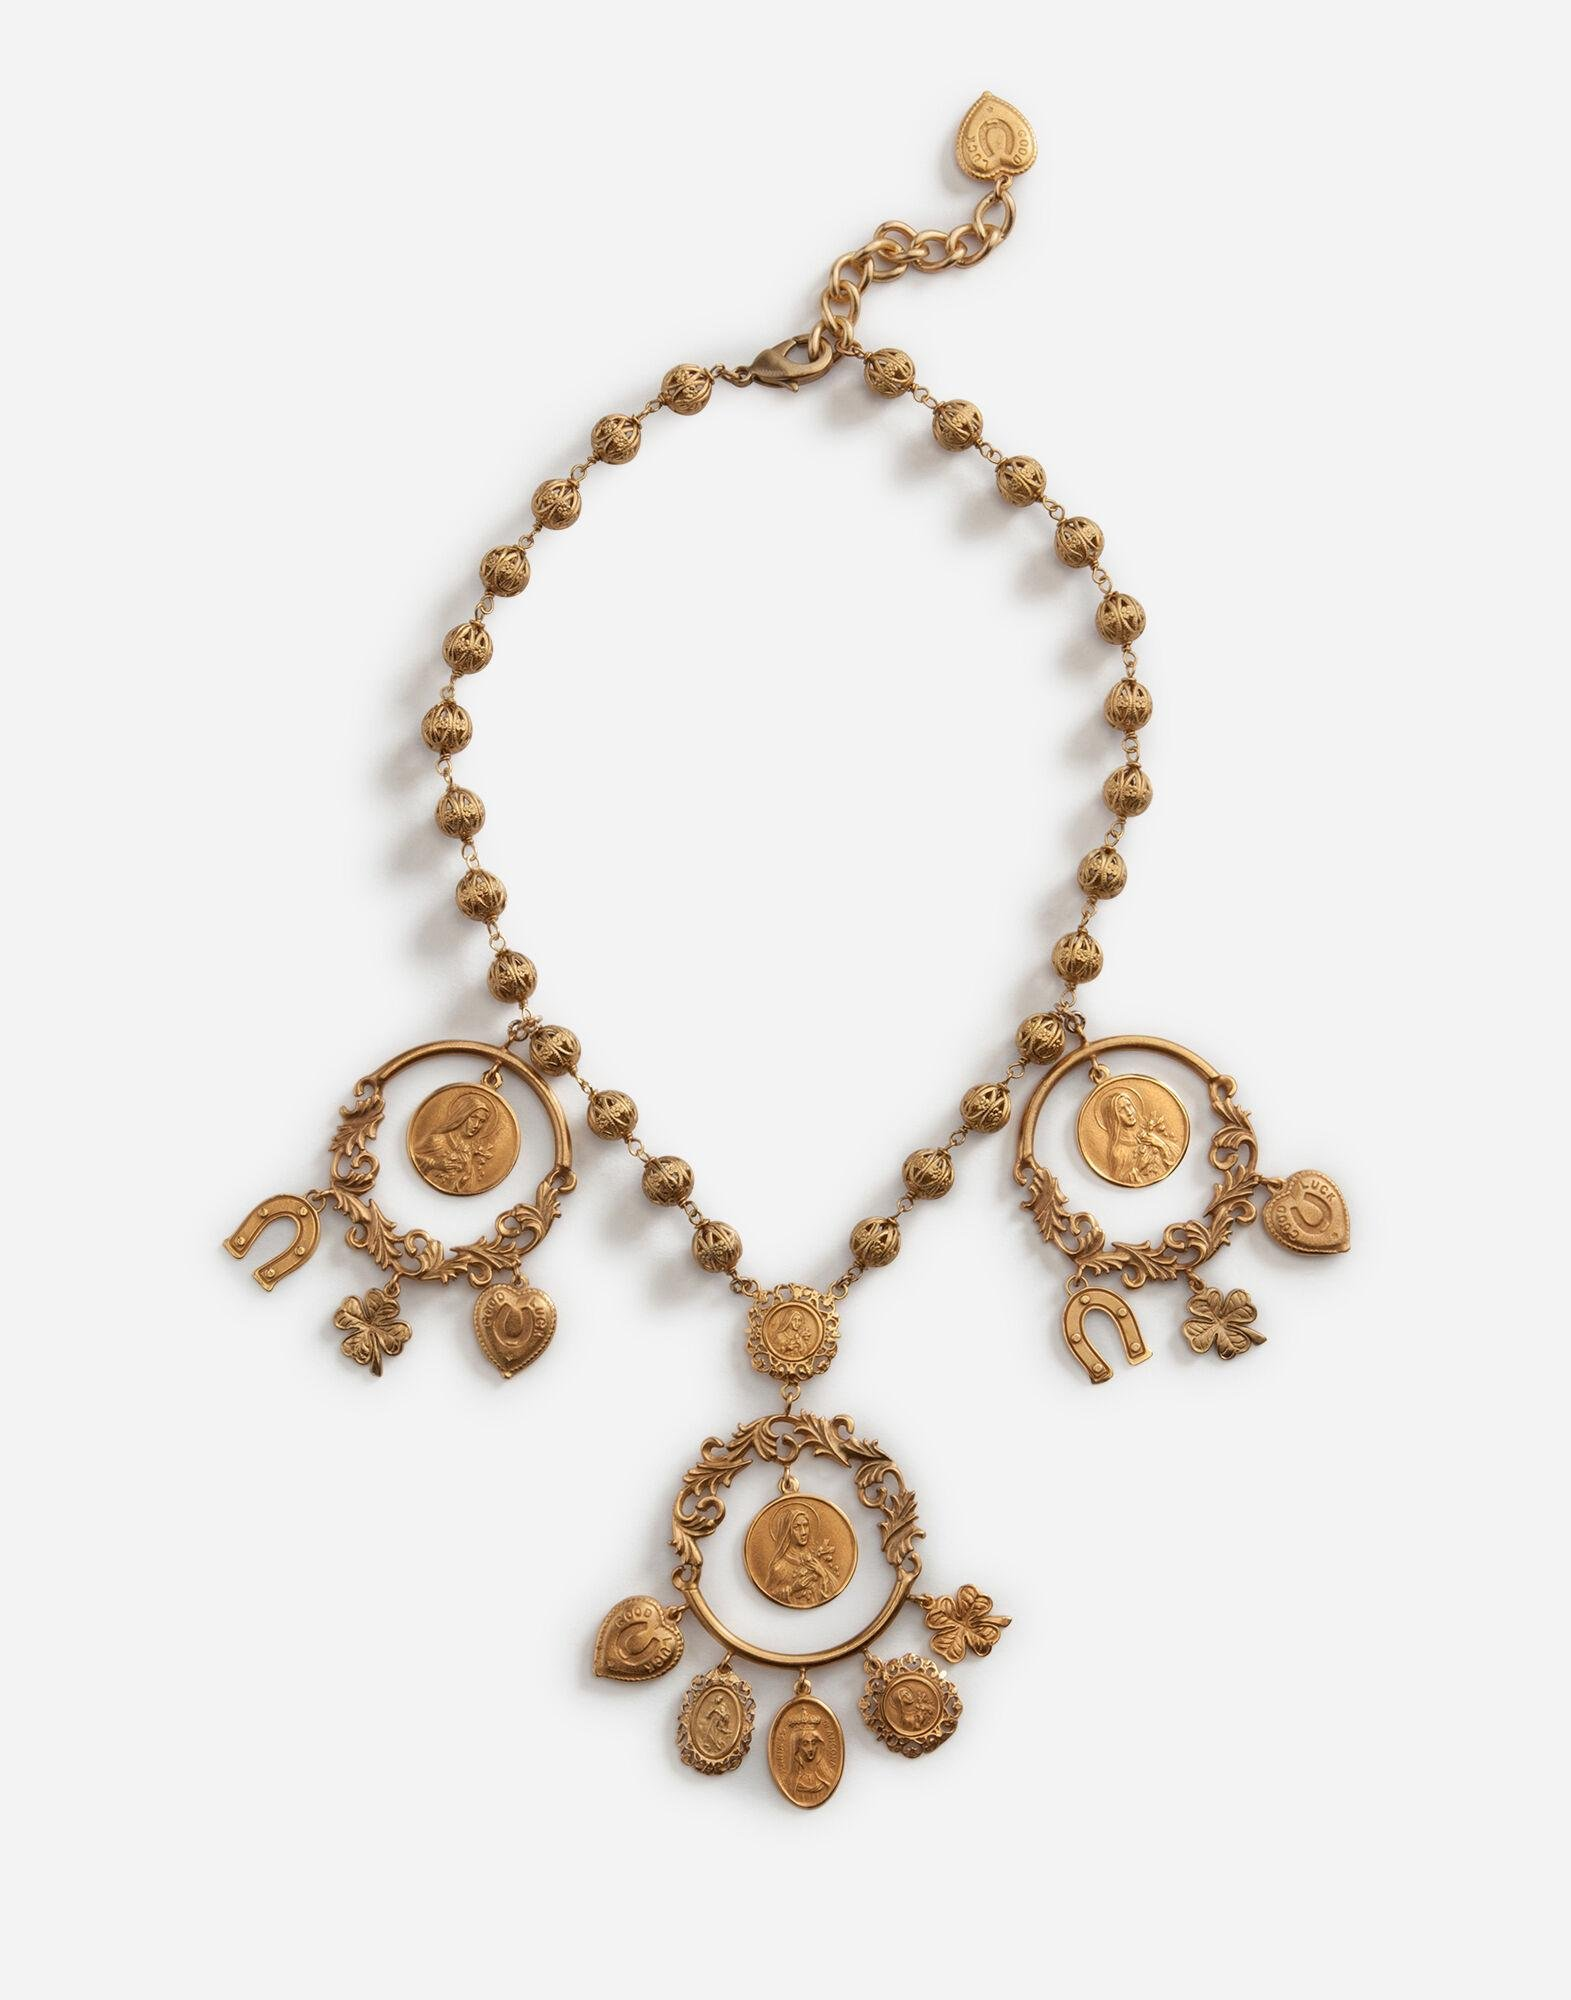 Necklace with decorative details